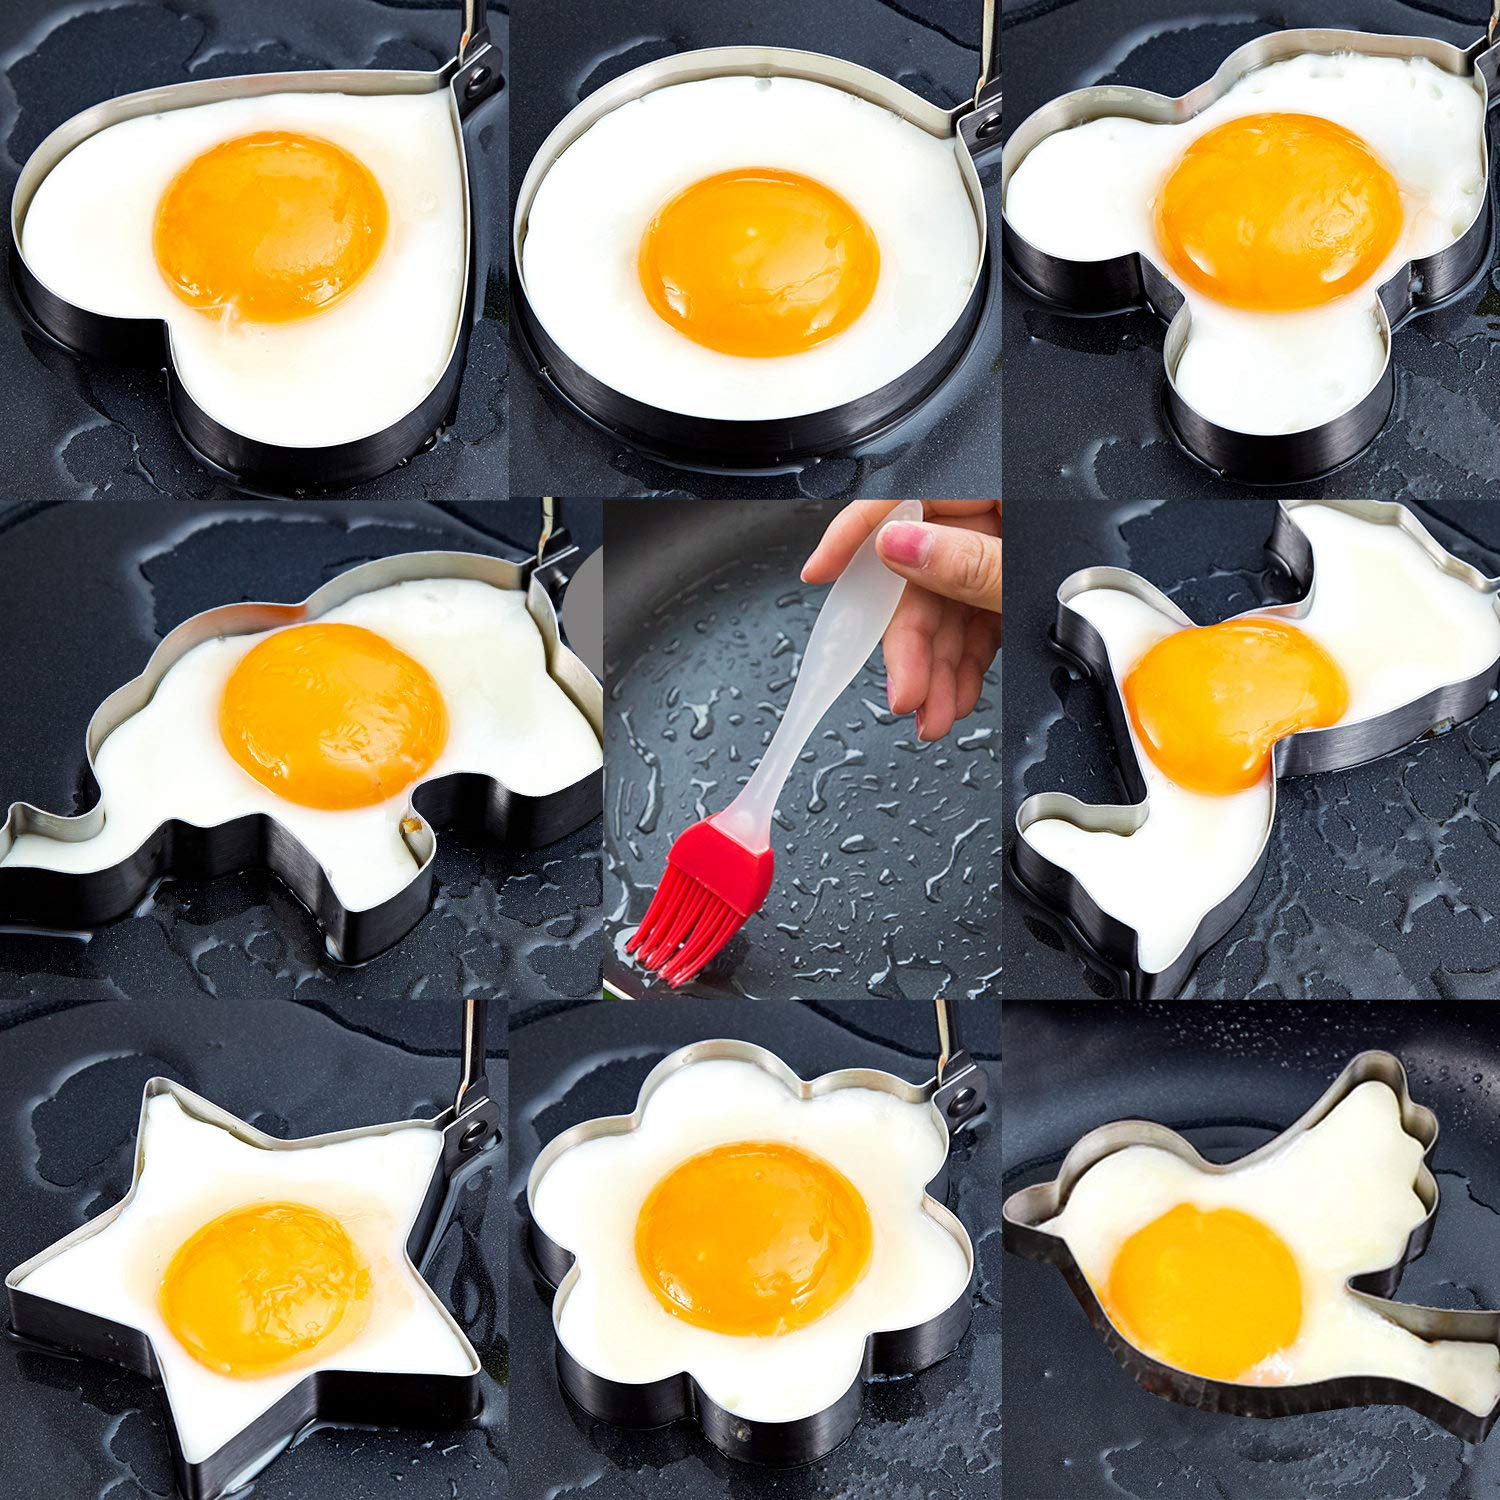 Egg poacher- 8pcs Different Shapes Stainless Steel Fried Egg Molds with 1pc Silicone Pastry Brush - Set of 9